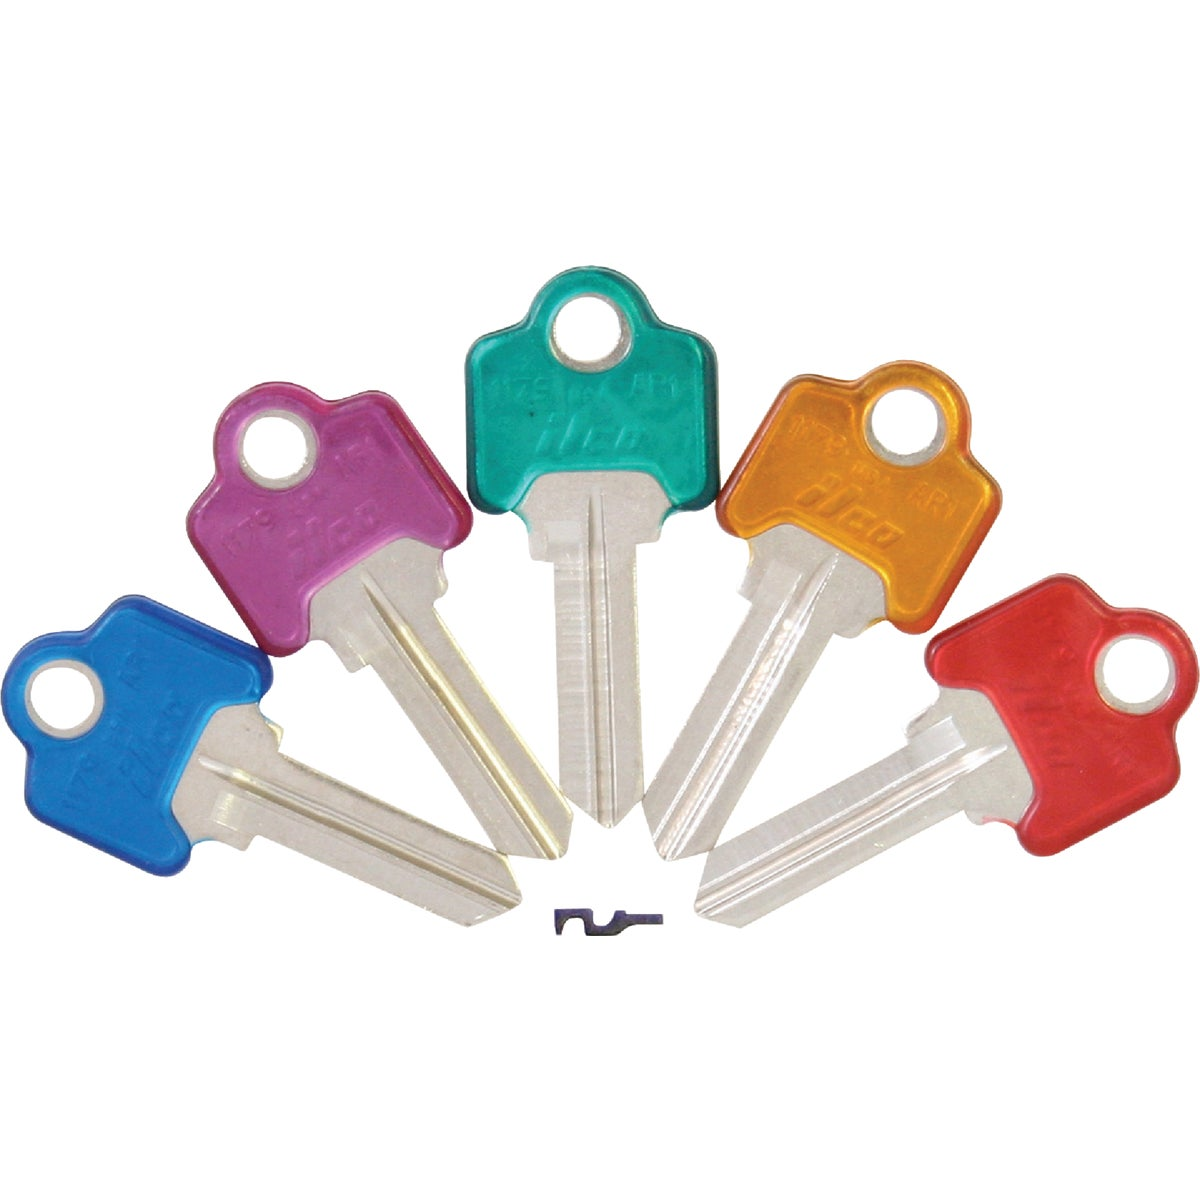 AR1PC ARROW DOOR KEY - AR1-PC ASST by Ilco Corp